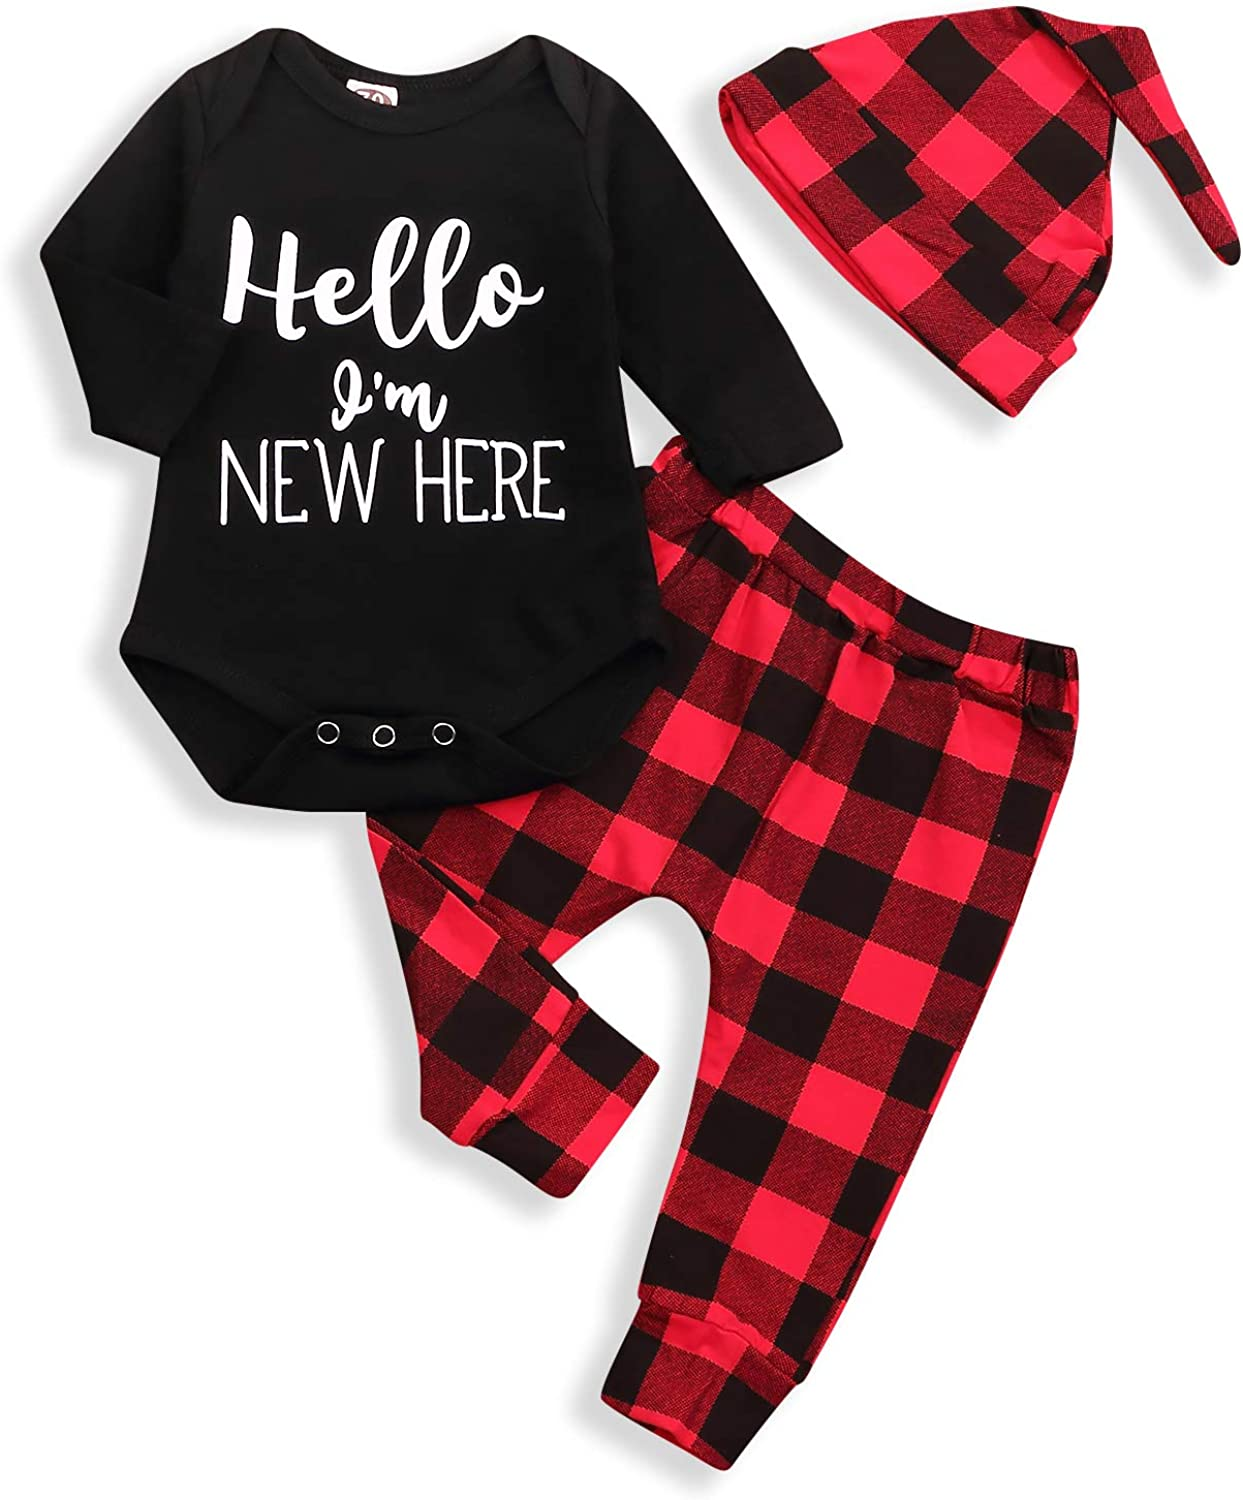 Infant Newborn Baby Boys Fall Outfits Long Sleeve Romper+Plaid Pant Set Fall Bodysuit Clothes